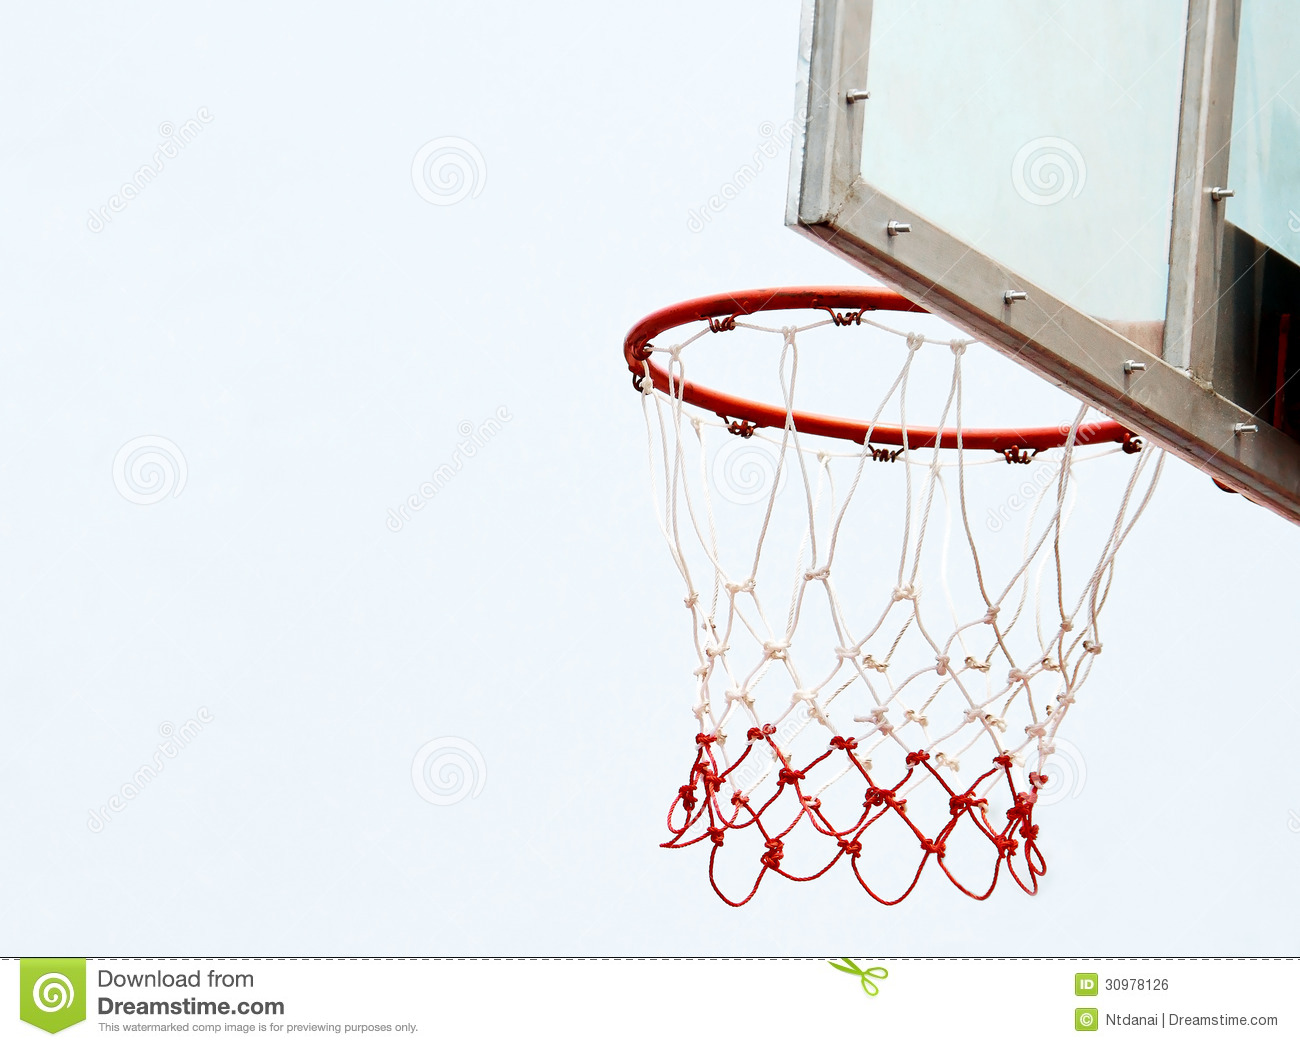 Basketball Hoop And Net Royalty Free Stock Image - Image: 30978126